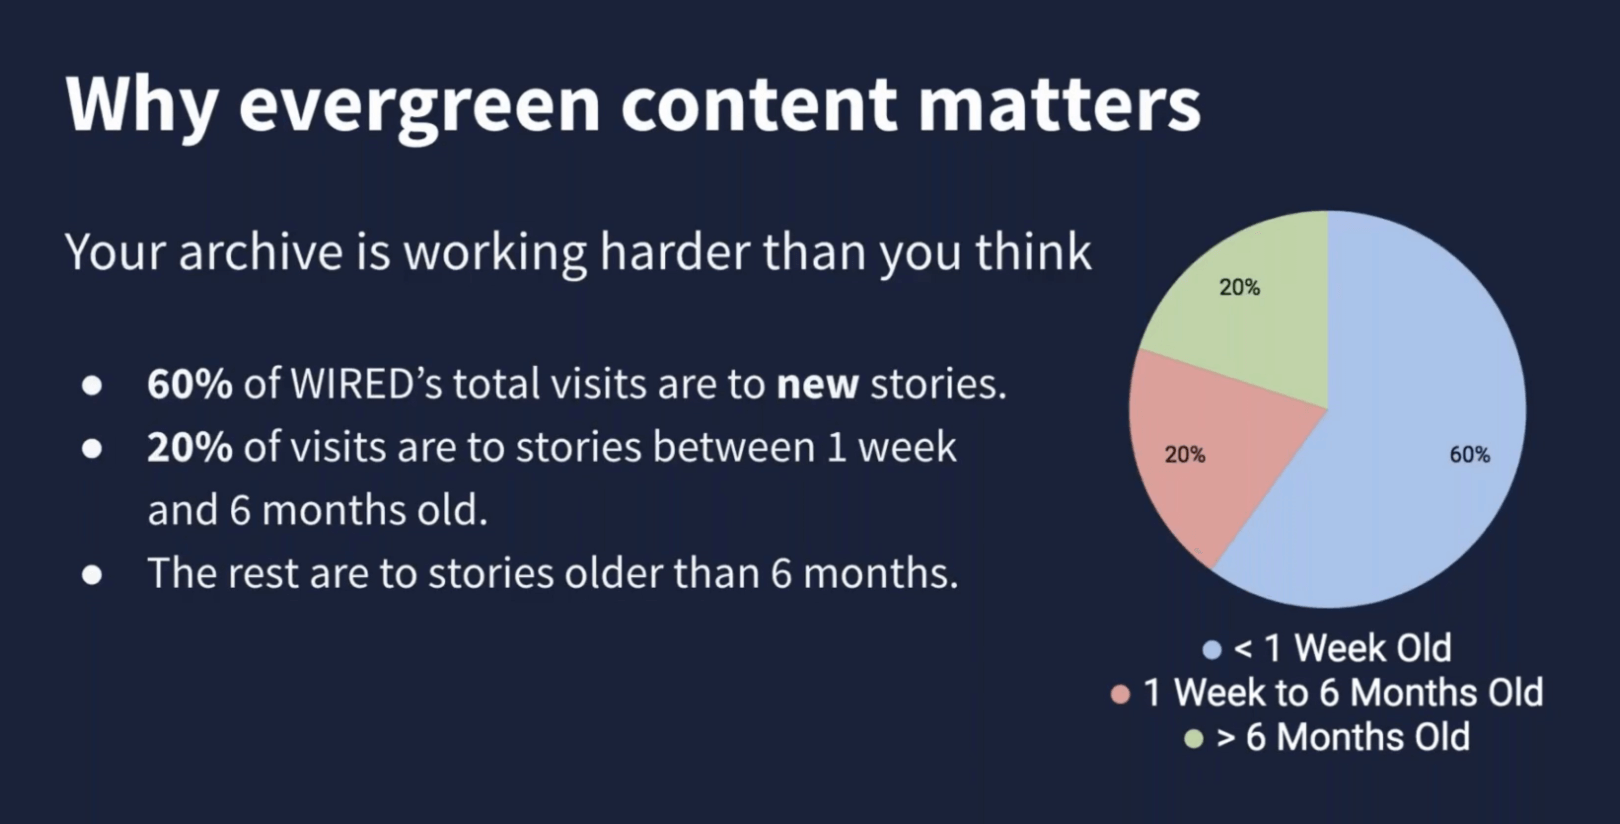 Why Evergreen Content Matters